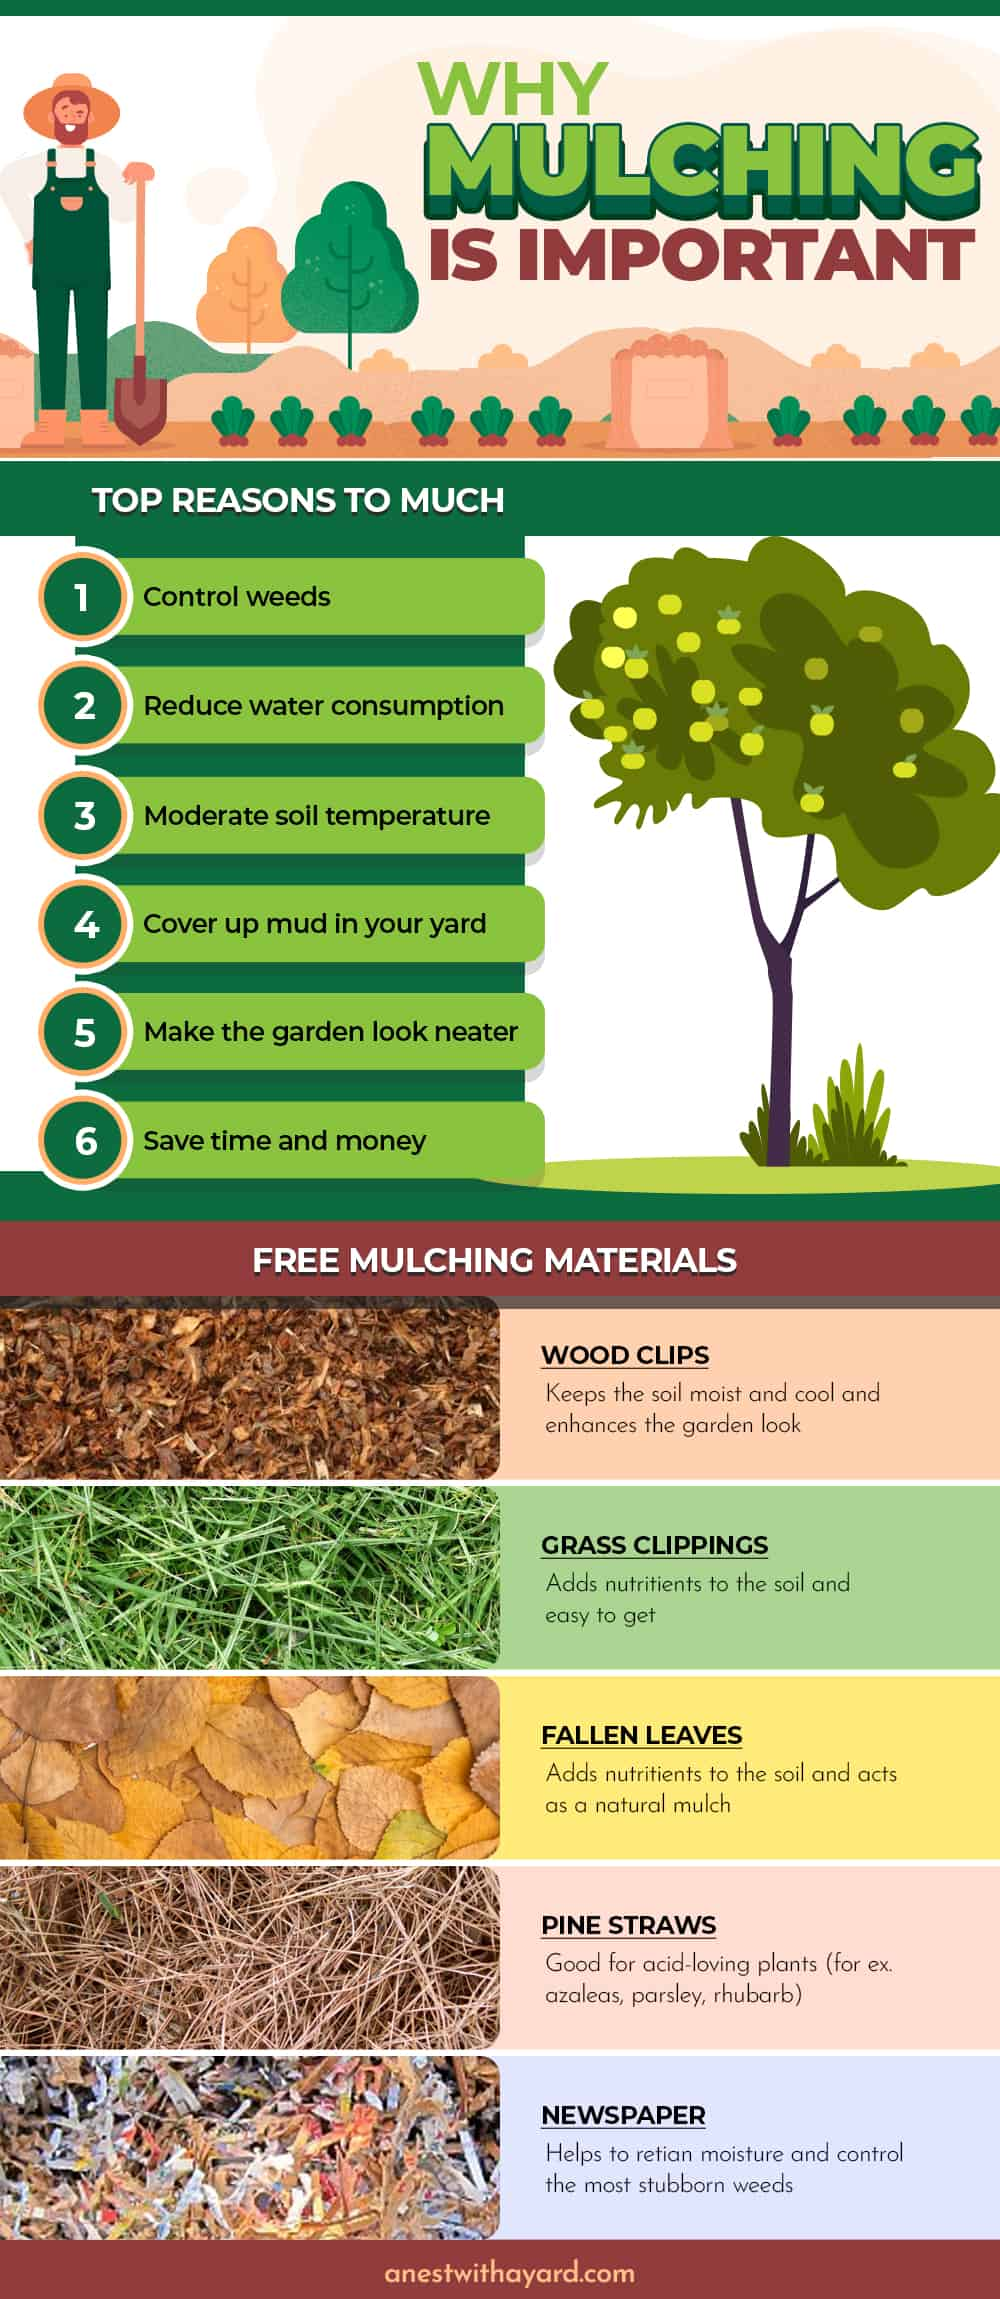 Why mulching is important #mulch #landscaping #backyard #landscape